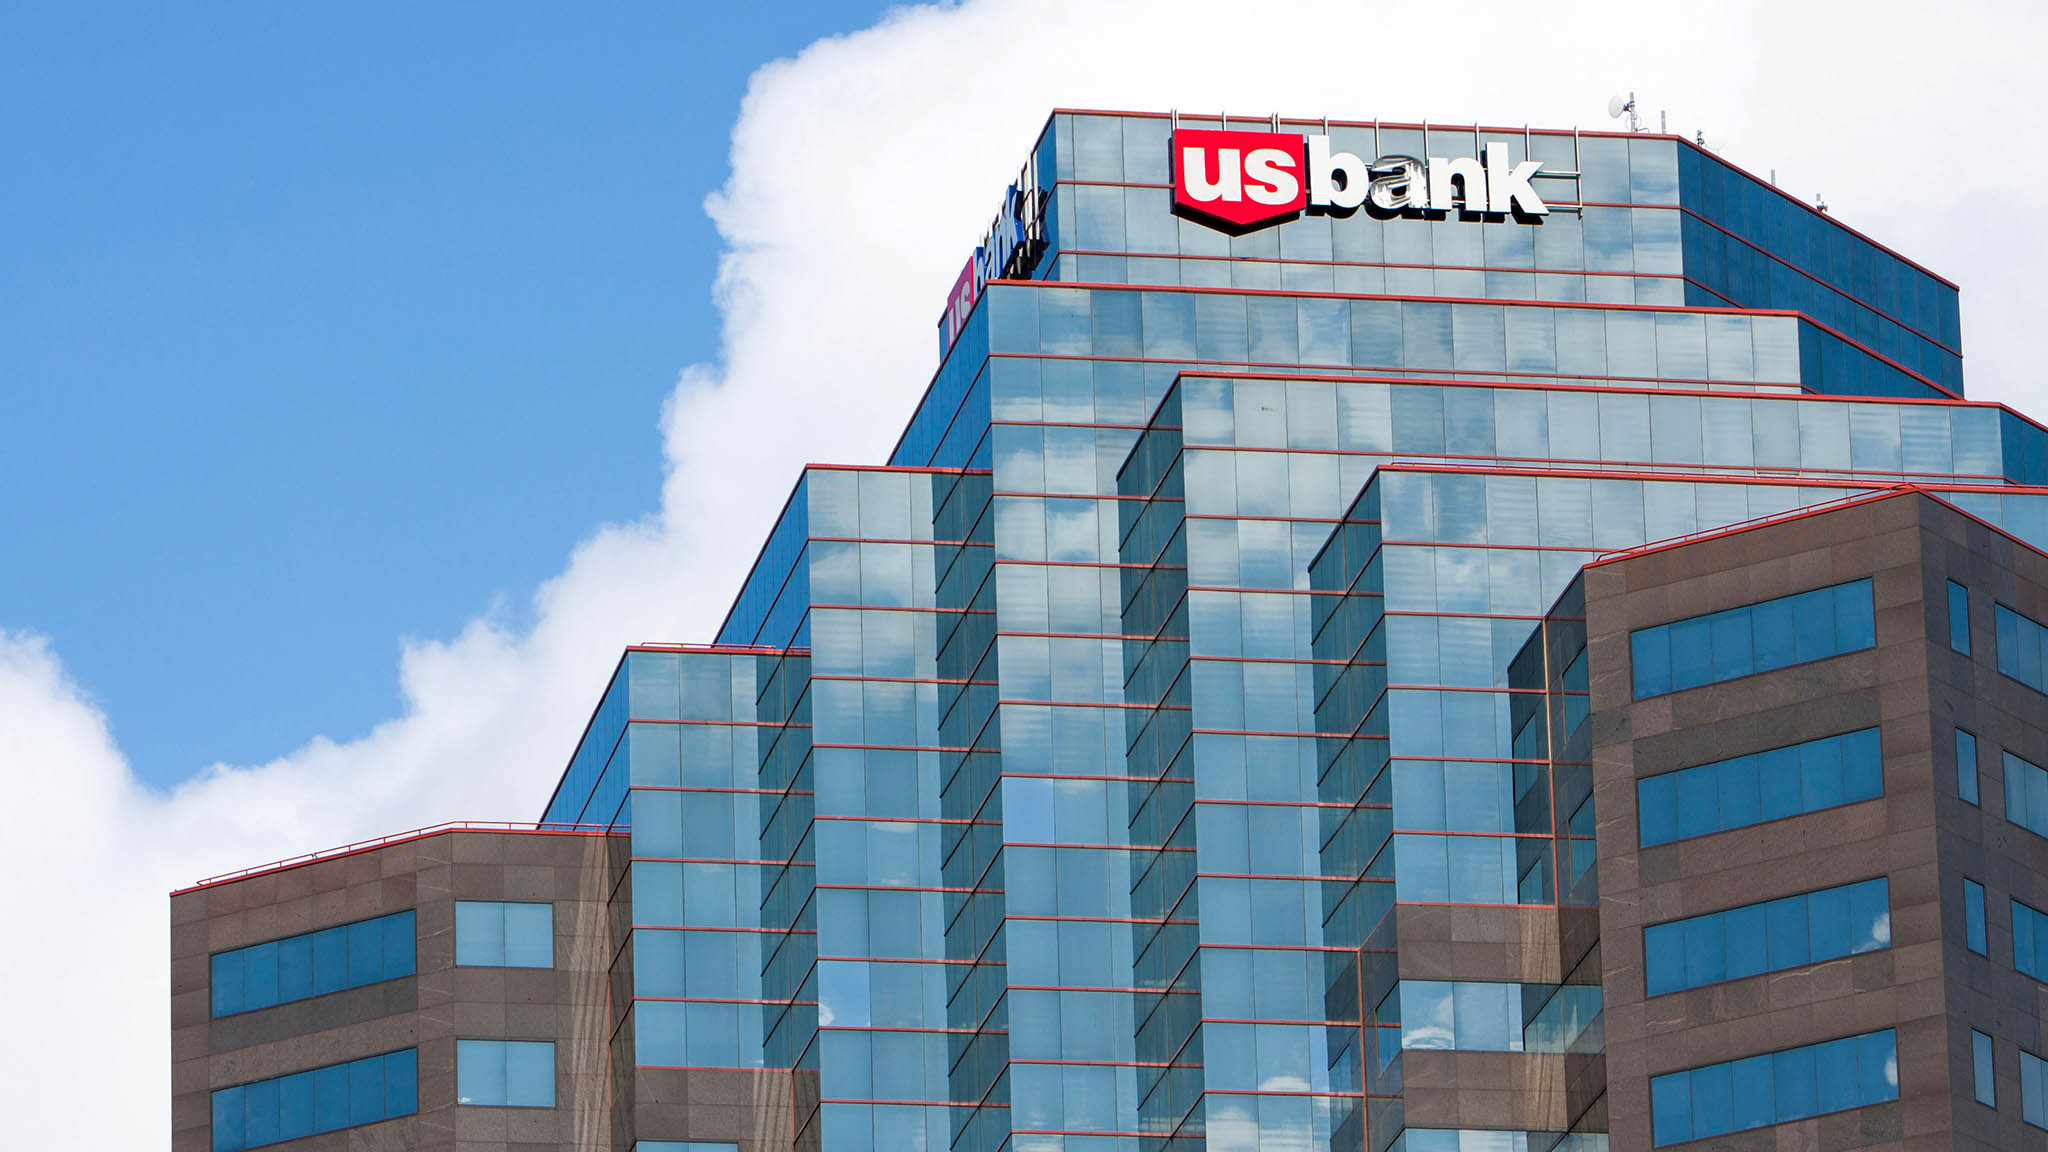 US Bank launches Bitcoin custody services as demand rises